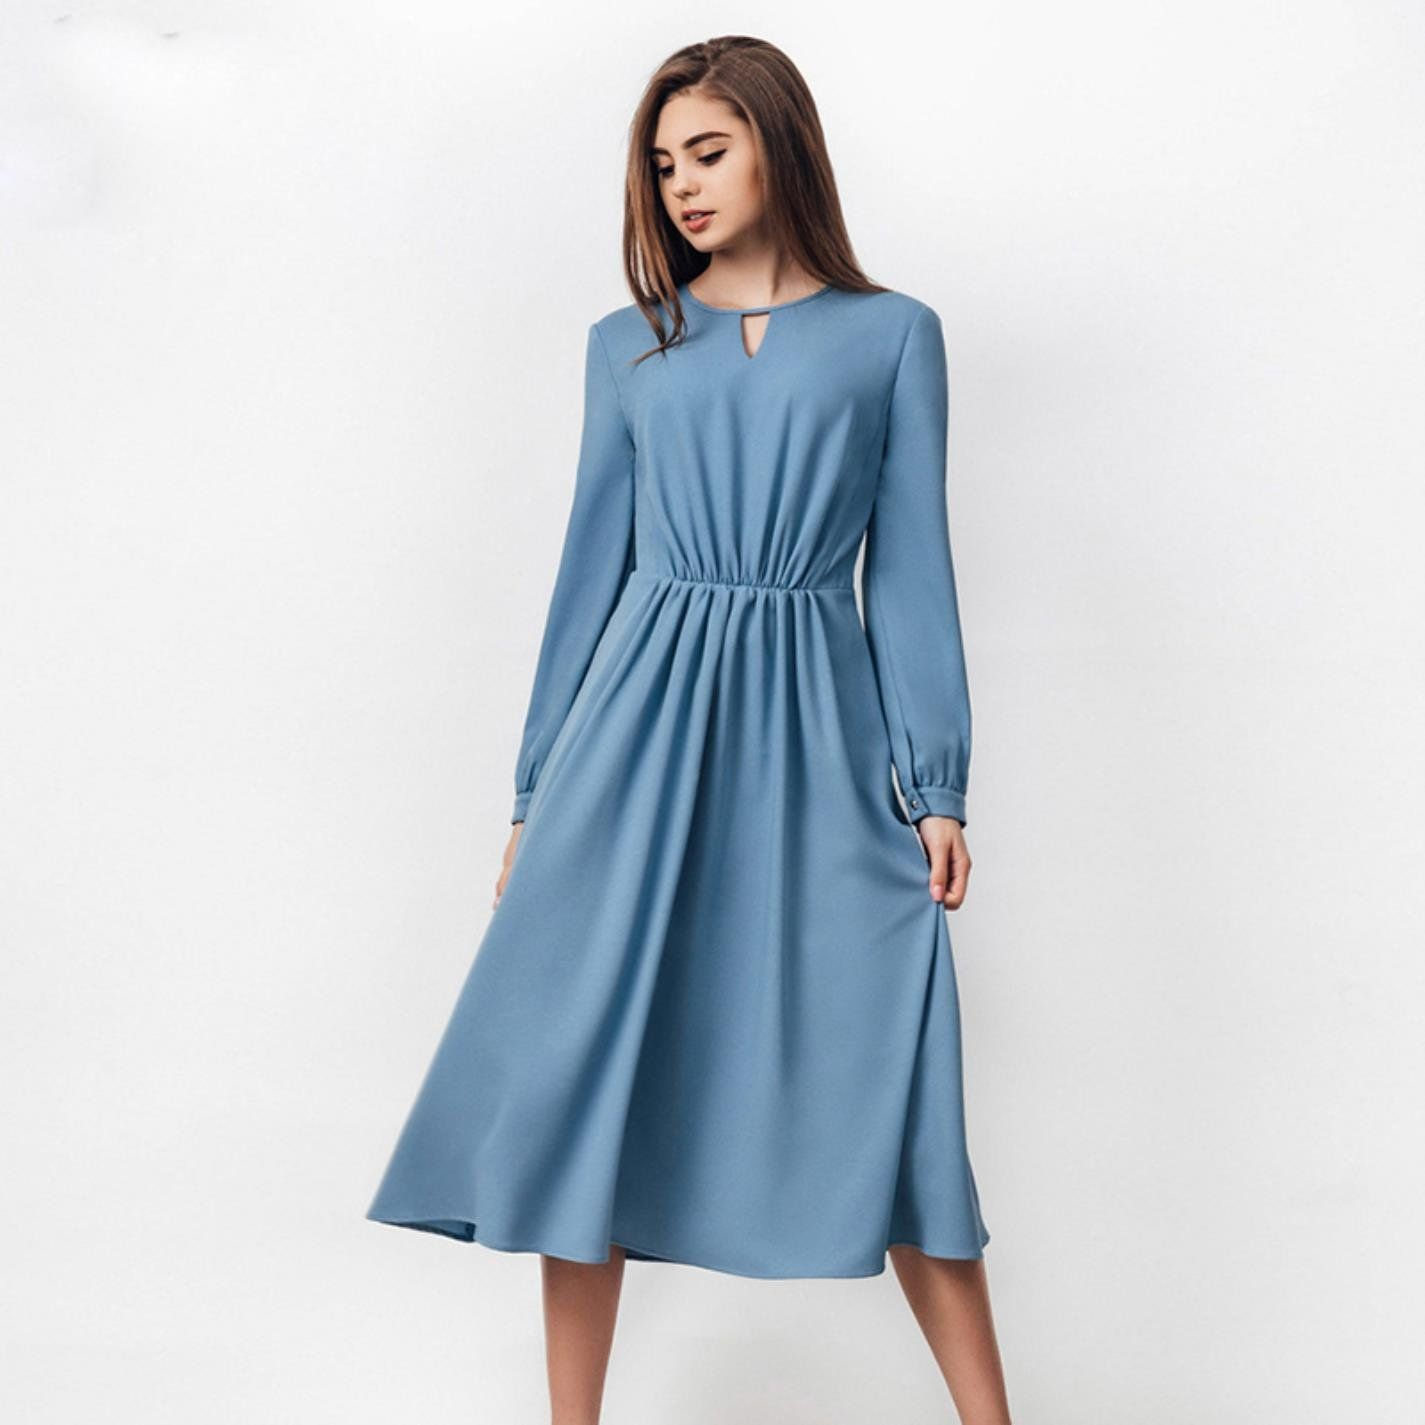 eabf822b4b7f0 Vintage Stitching Women Christmas Long Sleeve ALine Dresses ** Continue to  the product at the